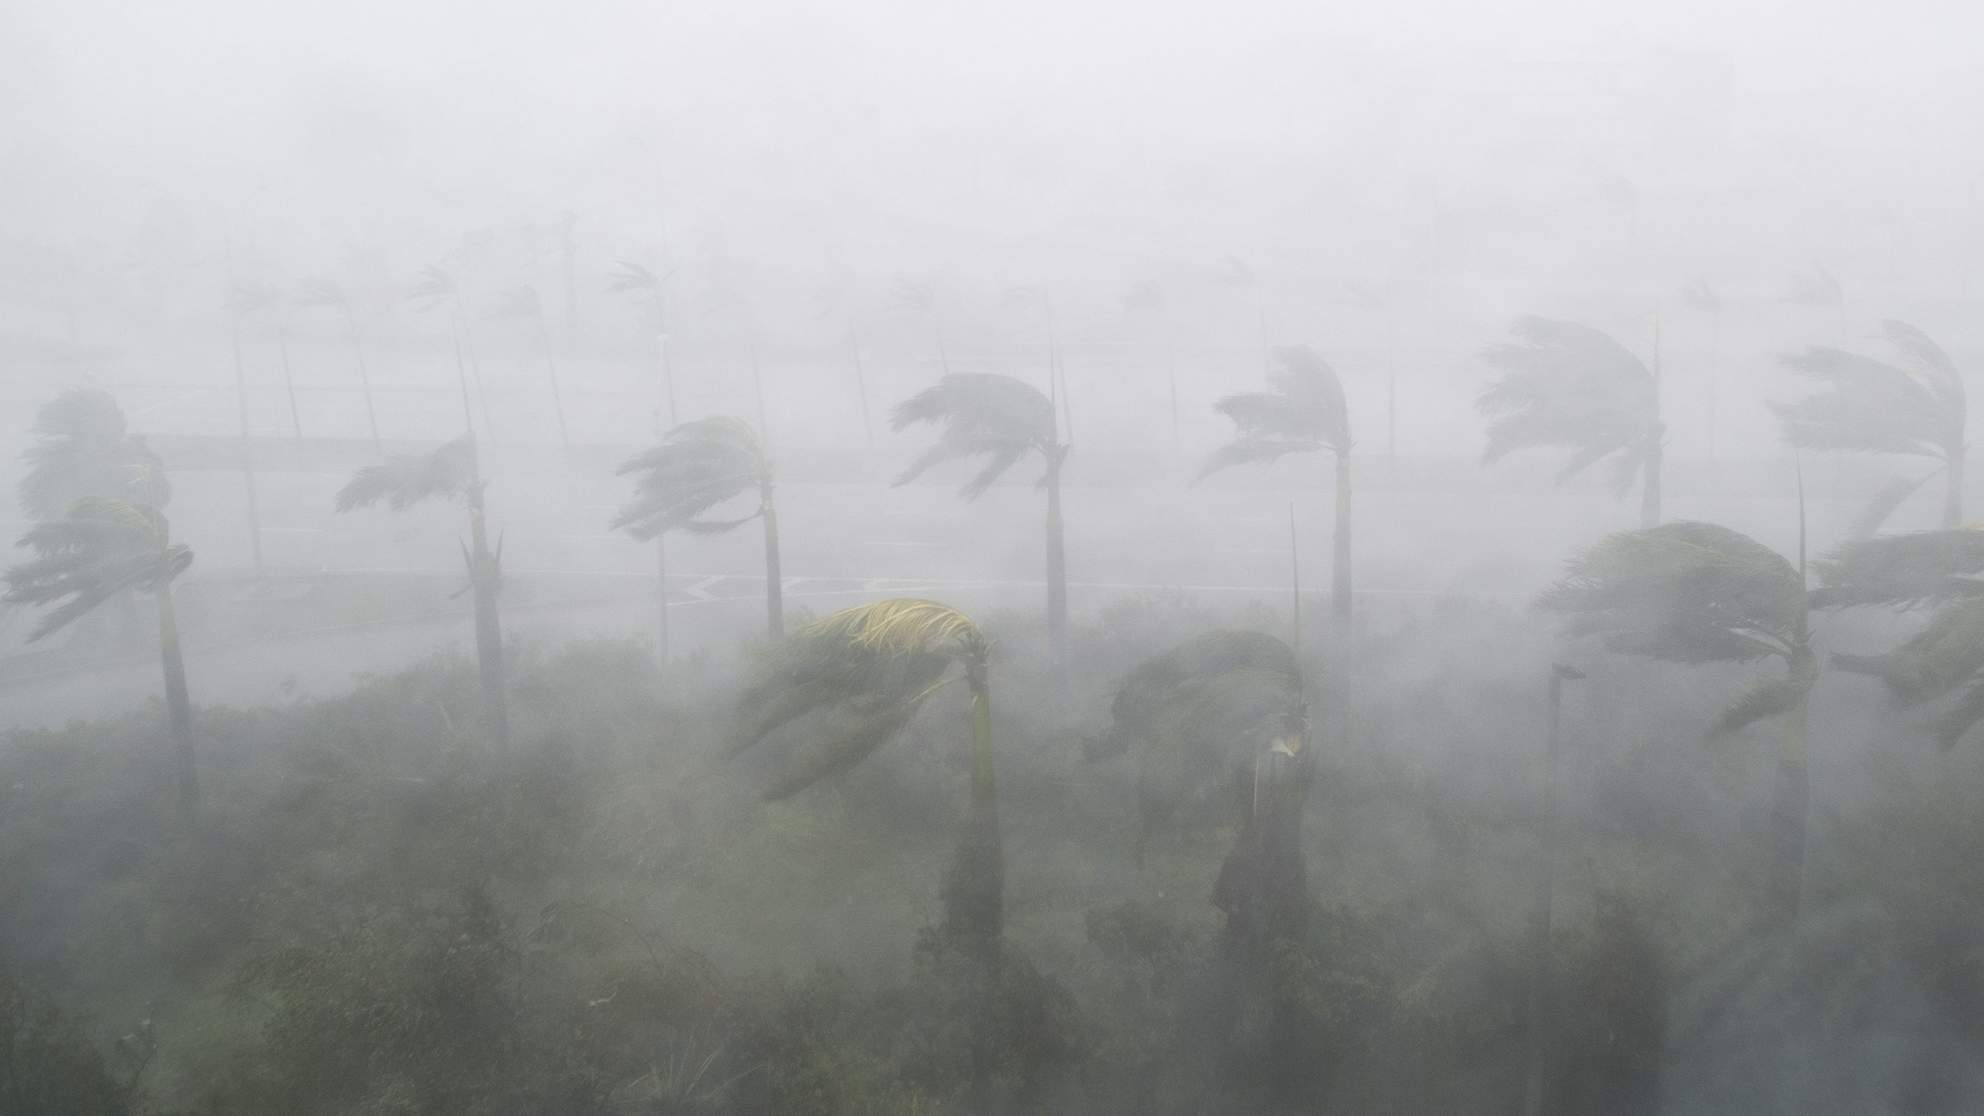 Heavy winds and rain from Hurricane Irma lash Miami on Sept. 10, 2017.